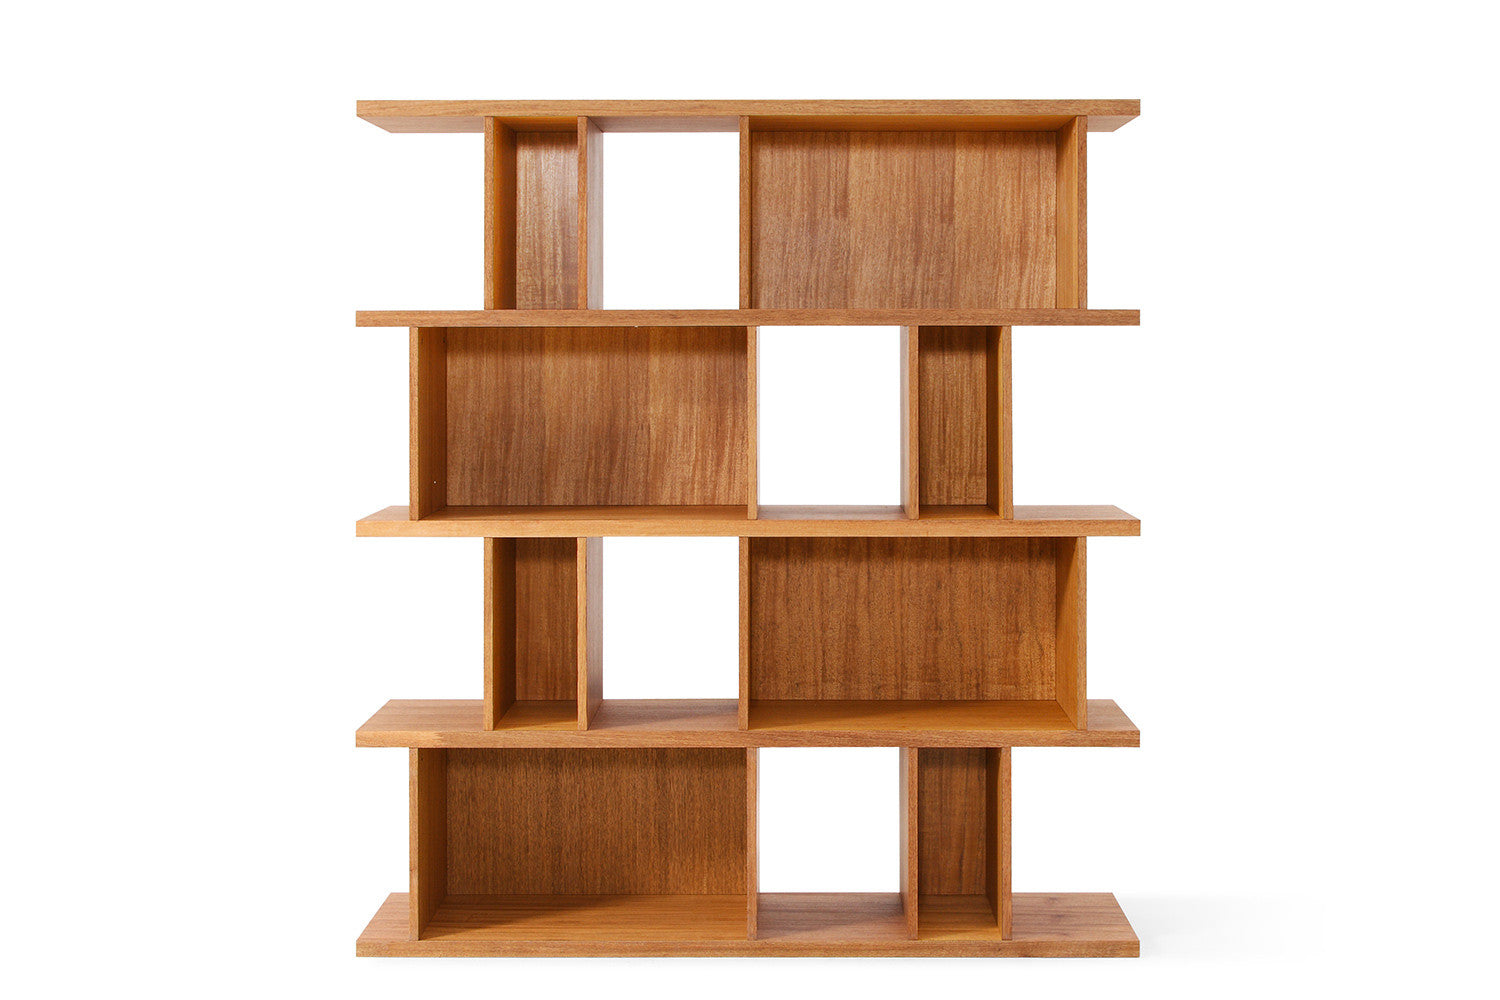 Biblioth que design scandinave en bois berra dewarens for Design scandinave wikipedia